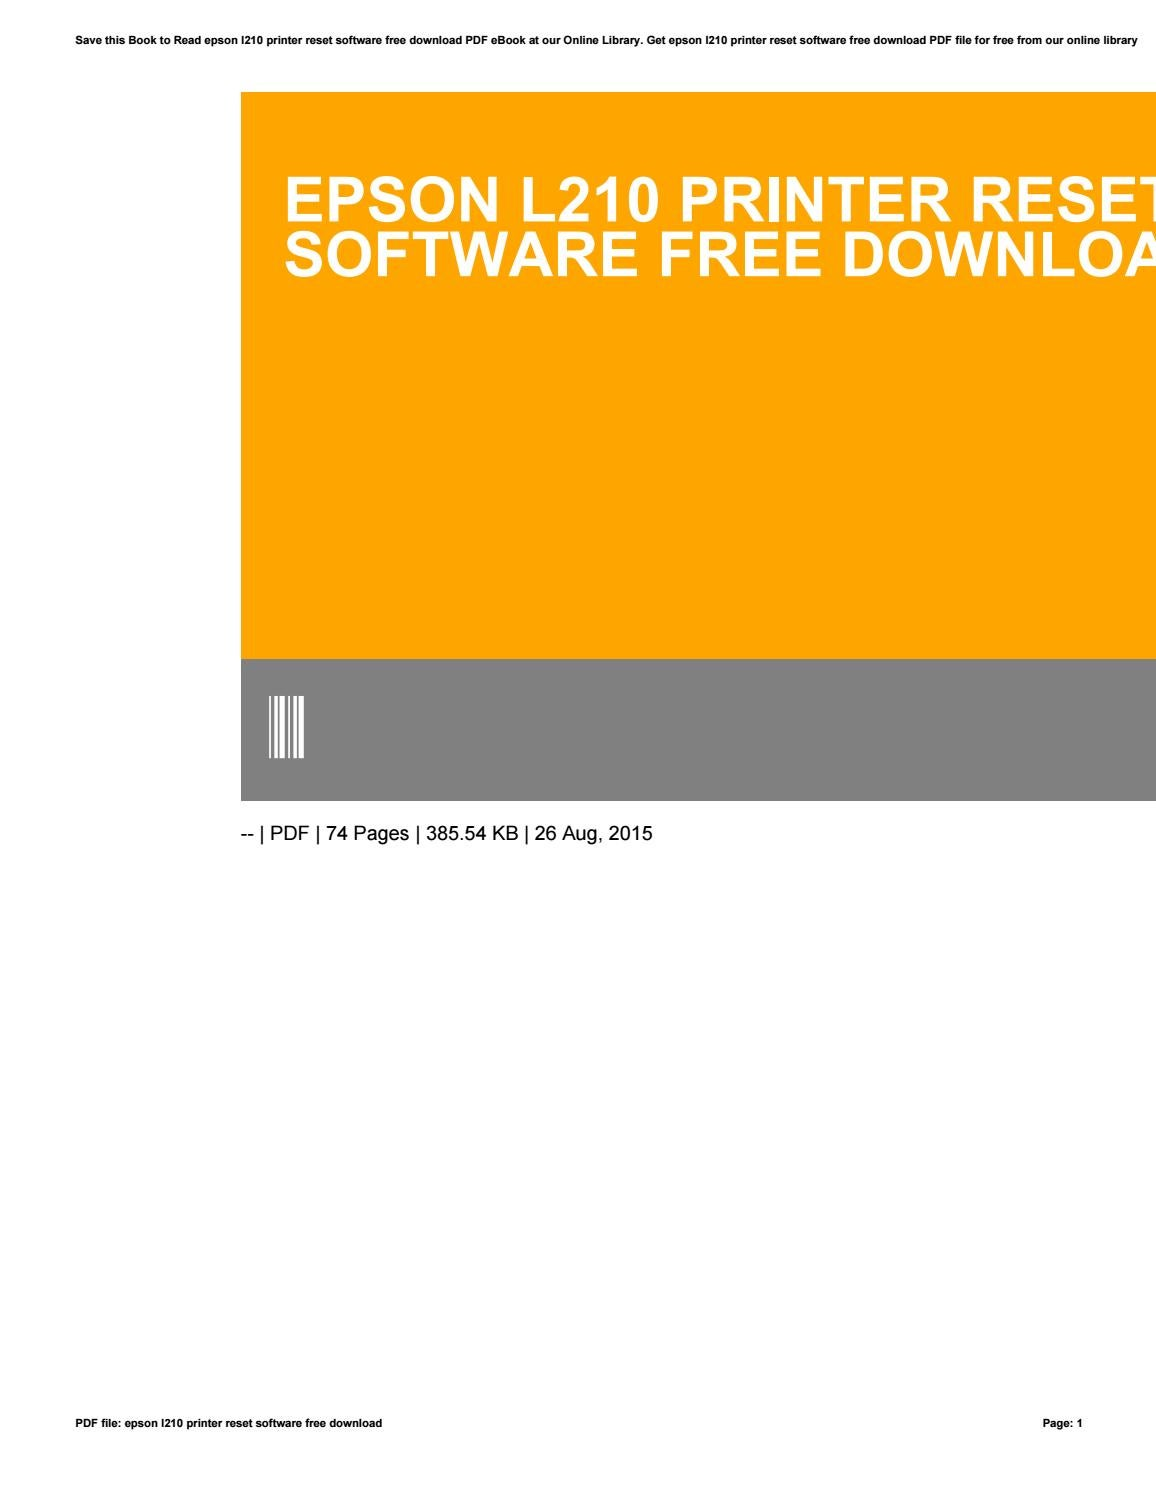 Epson l210 printer reset software free download by